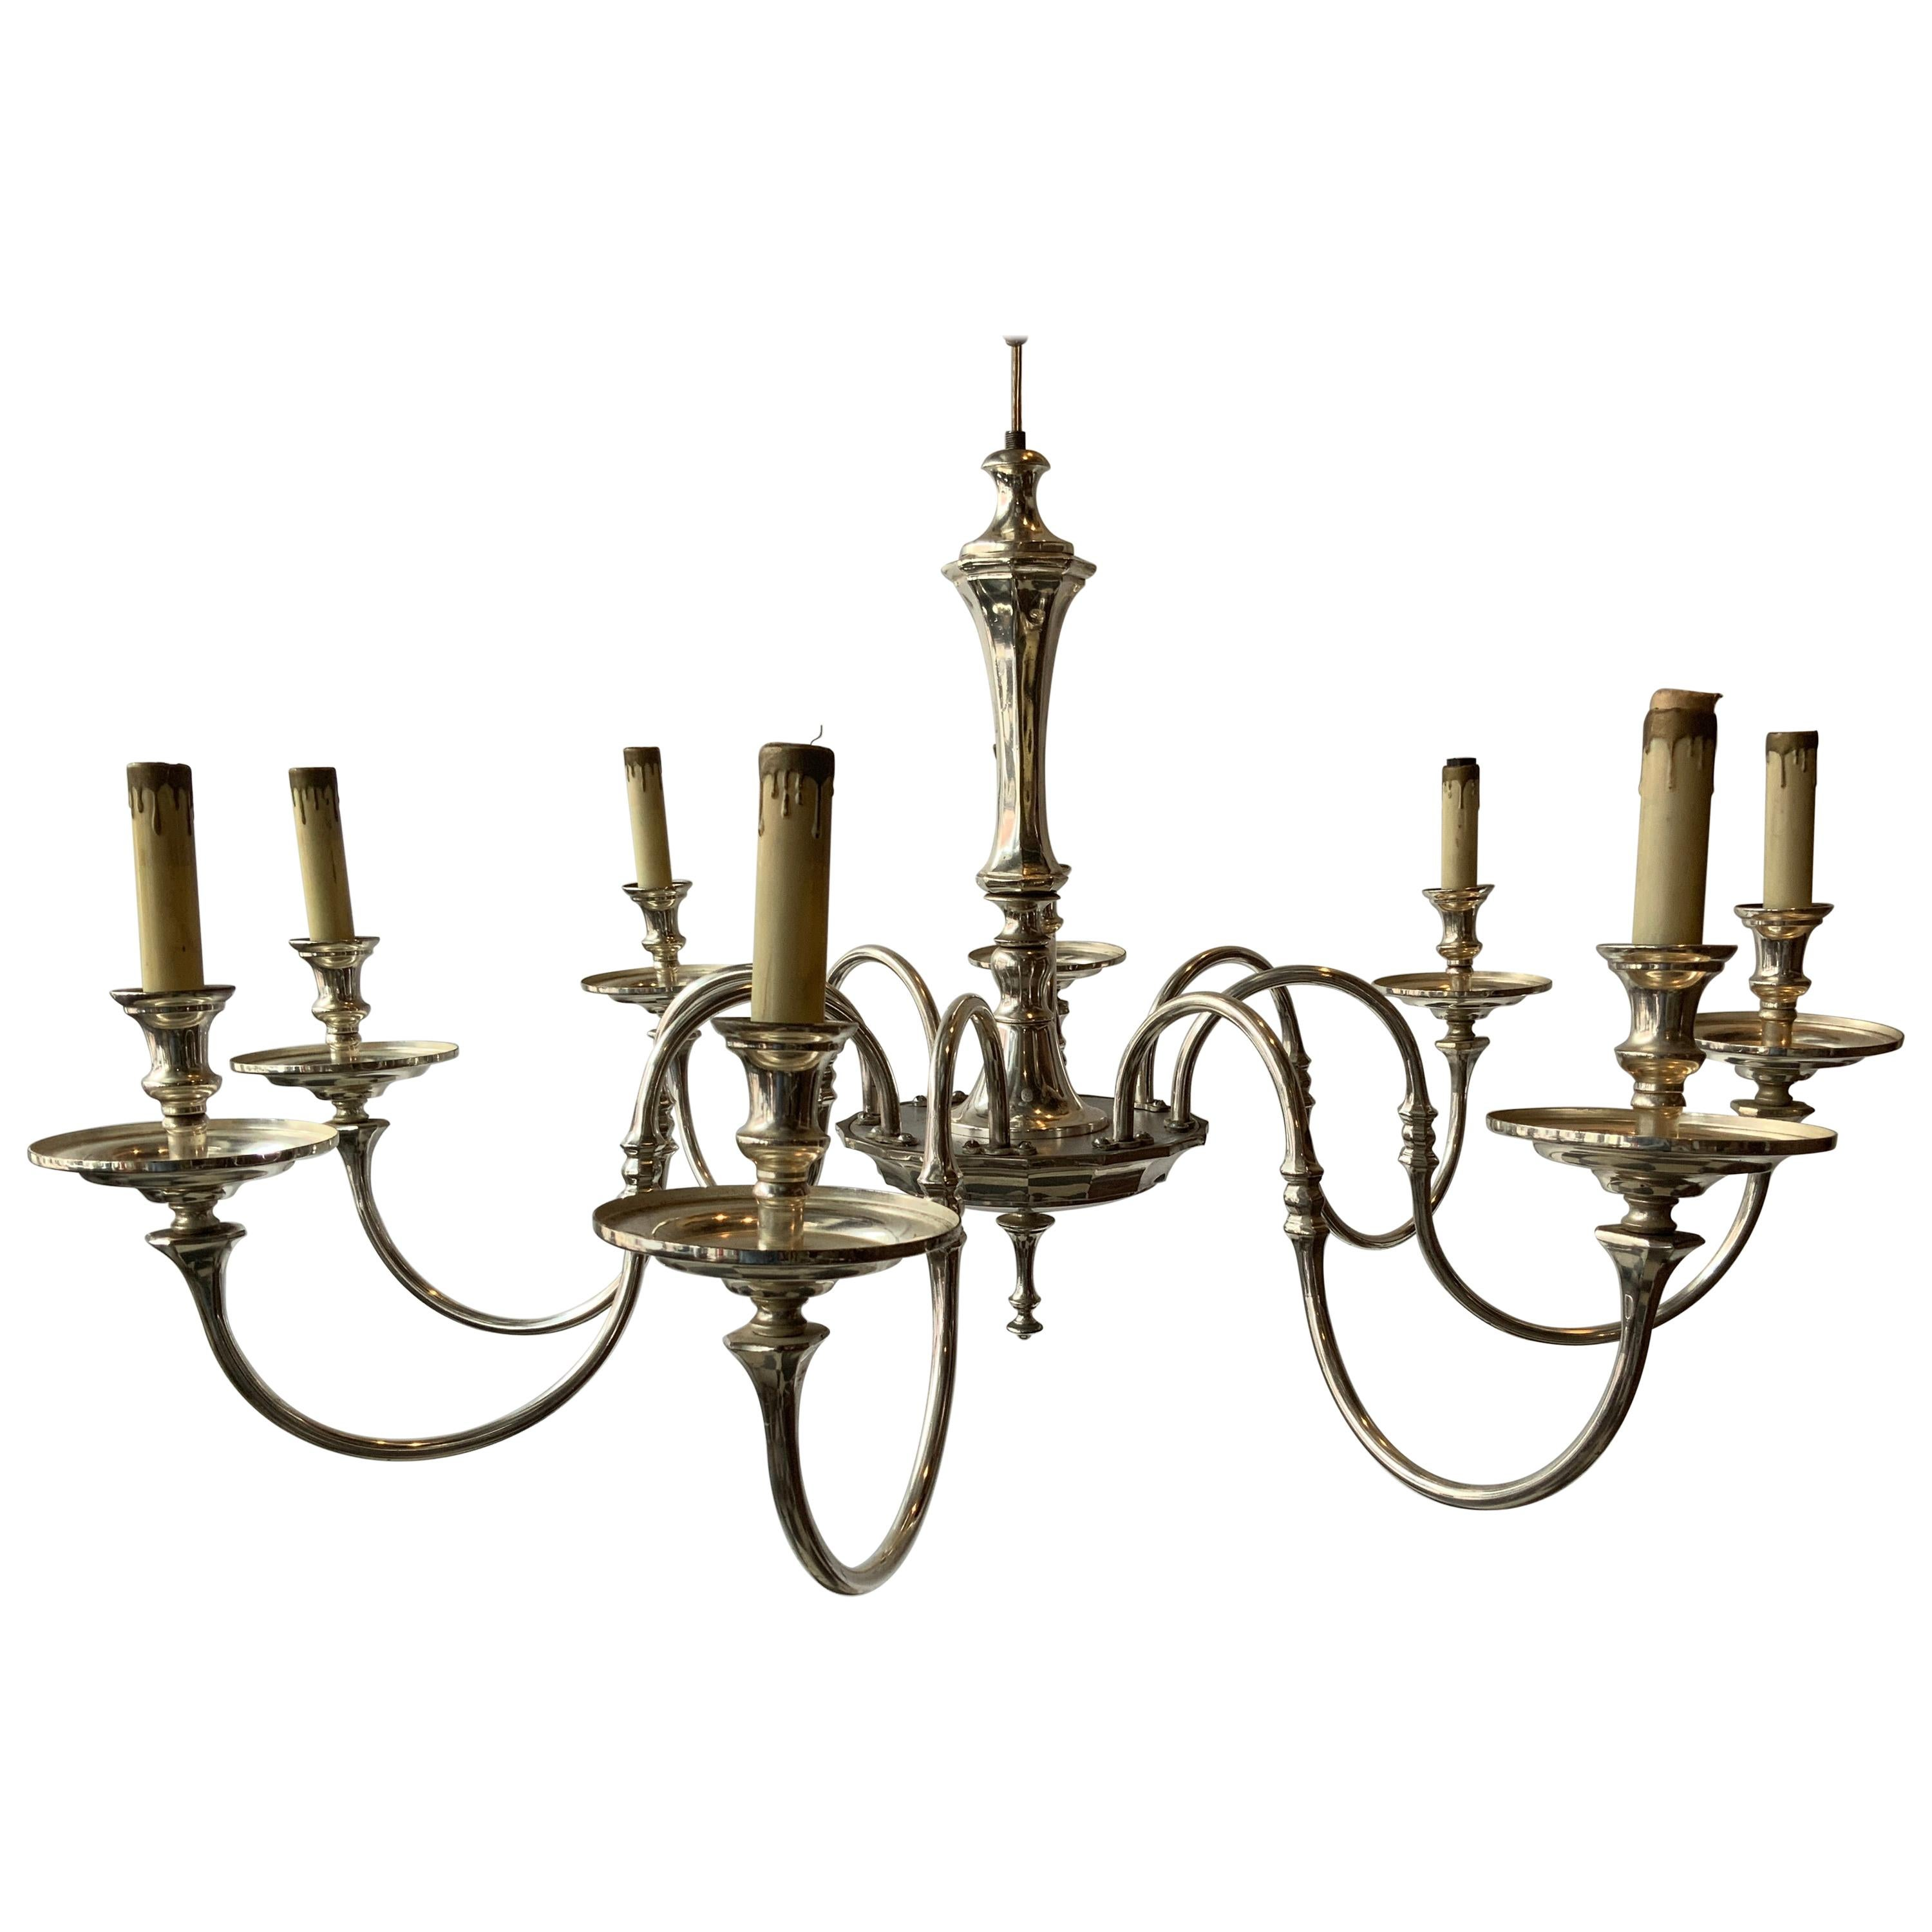 1960s Silver Plate 8-Arm Chandelier